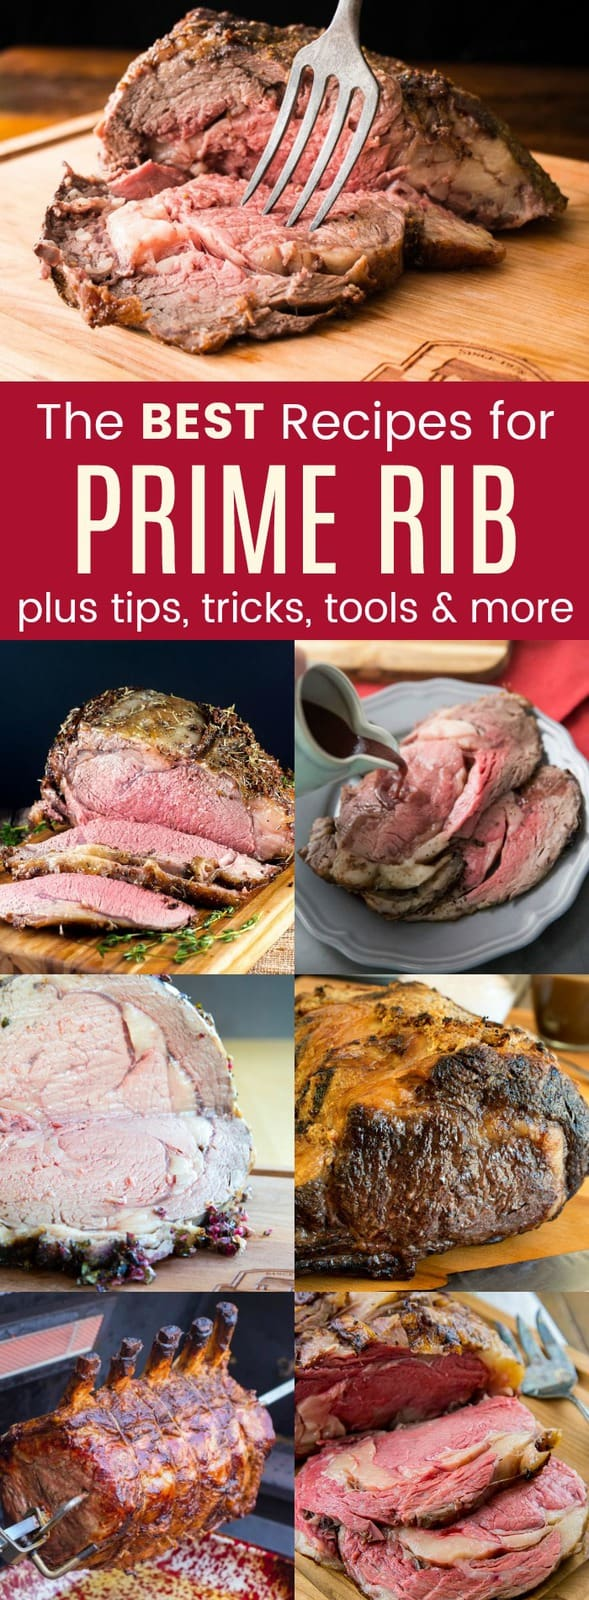 The Best Prime Rib Recipes - learn how to make prime rib for Christmas, New Year's Eve, or any special occasion. Plus tips, tricks, and tools for the perfect beef roast for the holidays. #AD